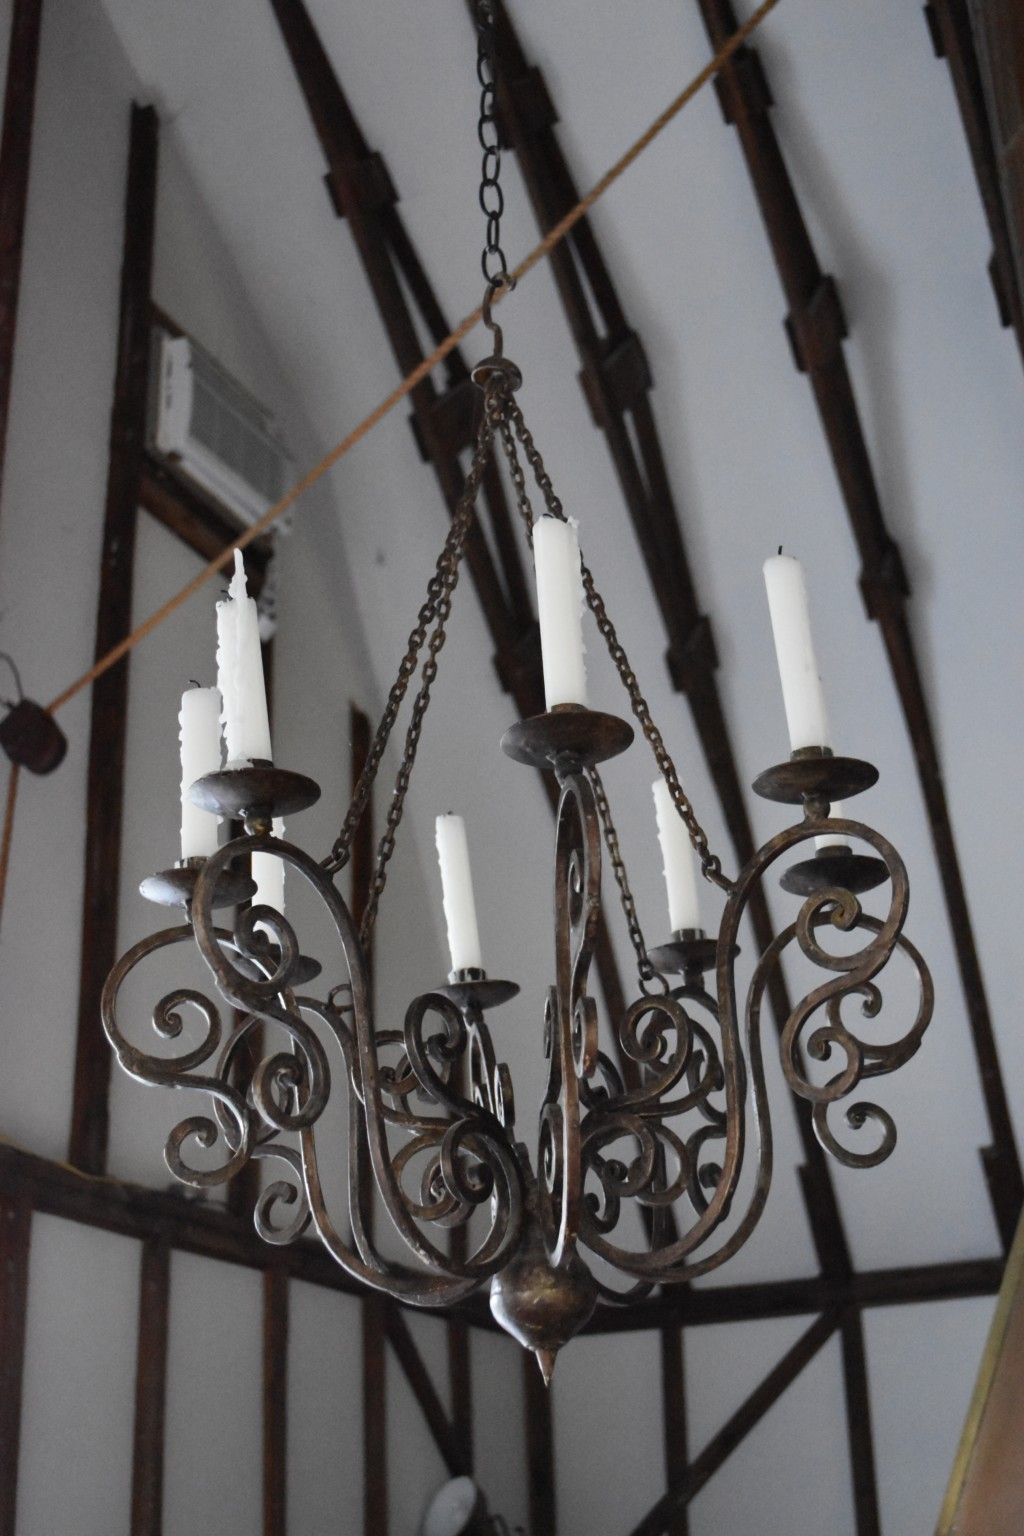 This pretty iron chandelier hangs by a heavy iron chain from the lofty ceiling. No electricity needed, these candles are old school. Love it.